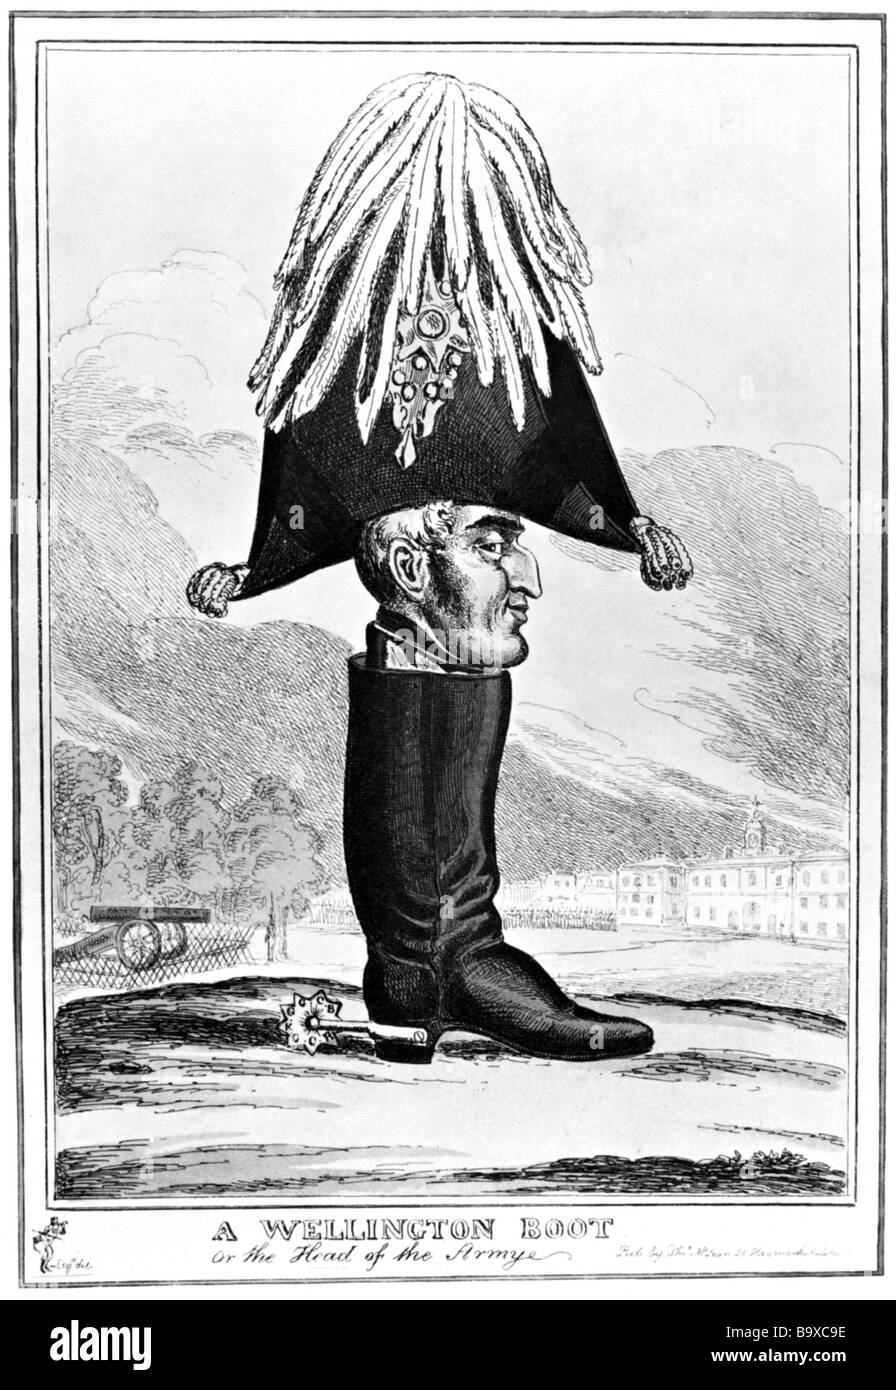 DUKE OF WELLINGTON (1769-1852) Cartoon showing him in the Wellington boot named after him published in 1827 - Stock Image